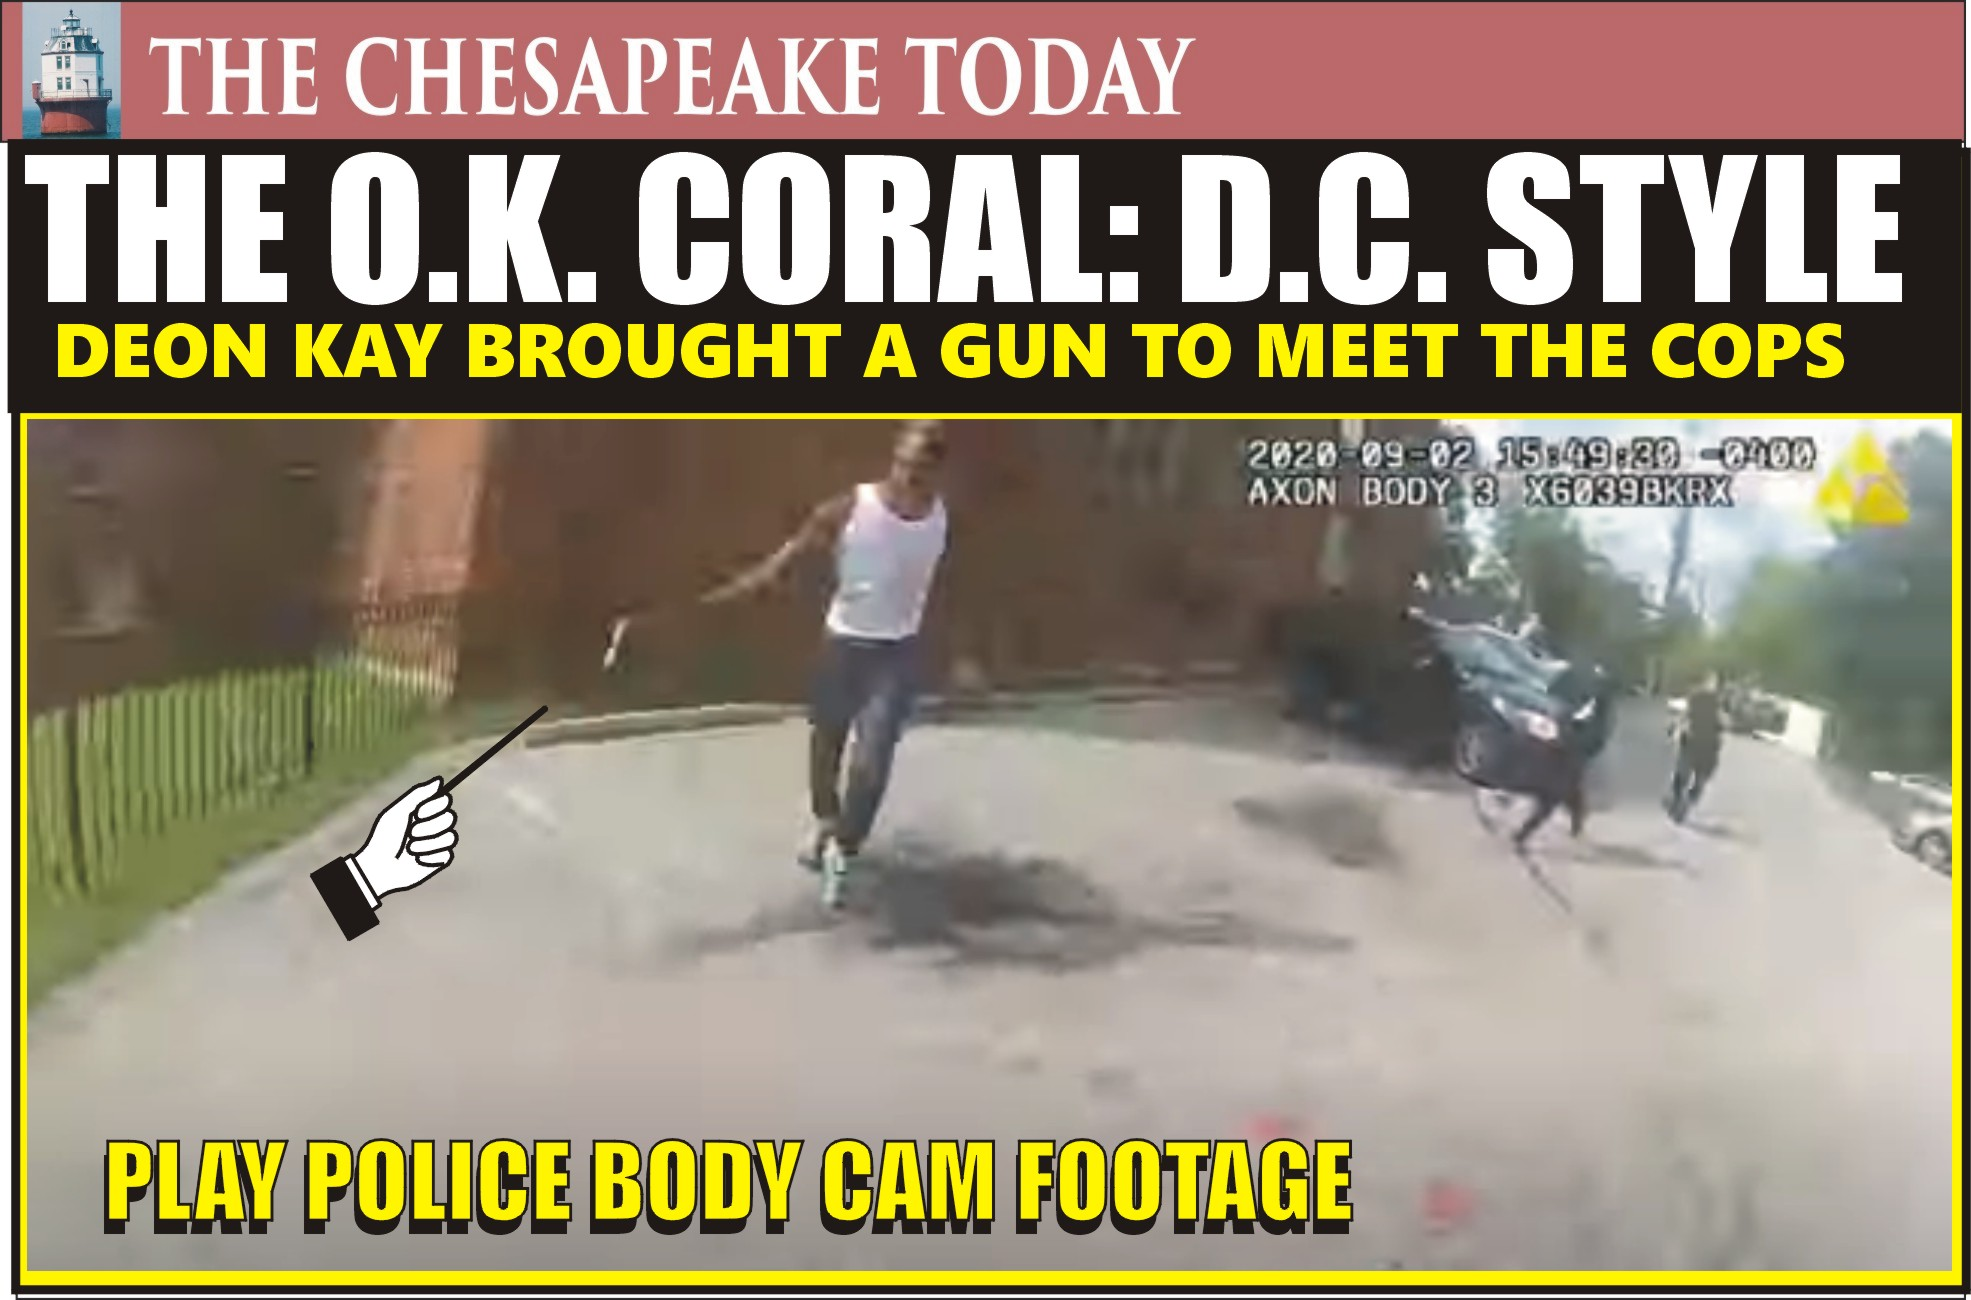 DC POLICE VIDEO: Body Cam of Deon Kay pulling a gun on District Police Officers prior to being shot dead